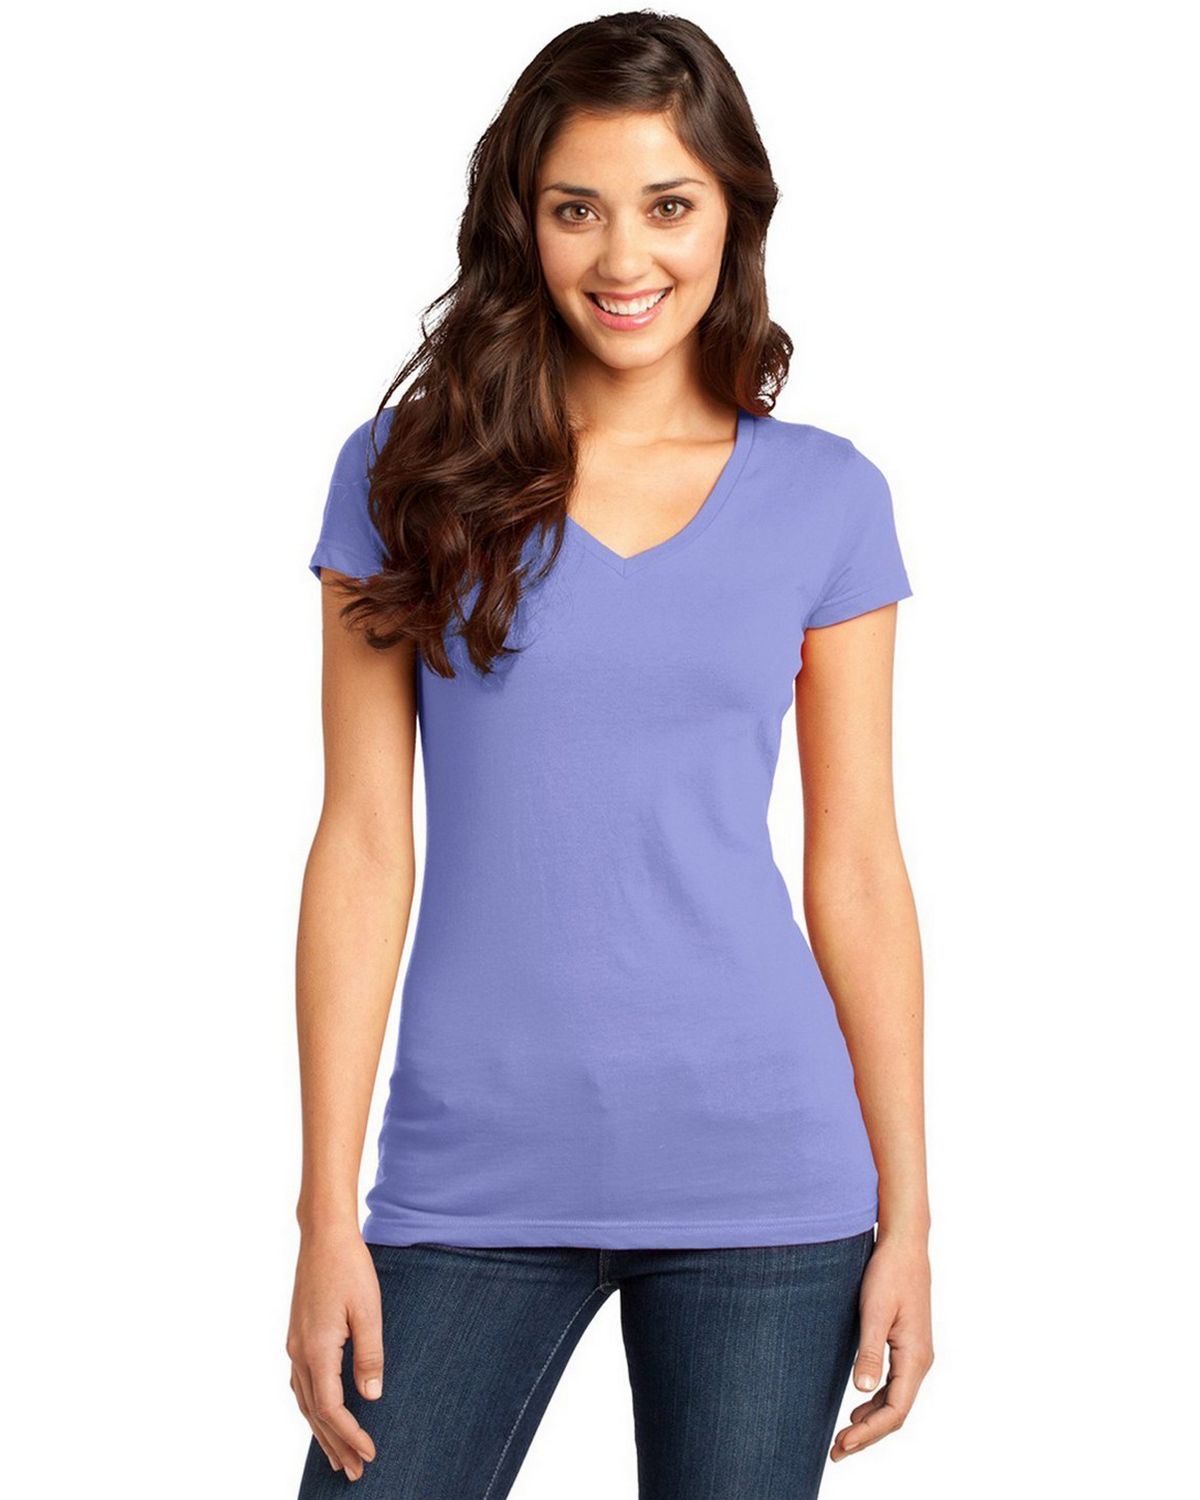 District DT6501 Juniors Very Important V-Neck Tee